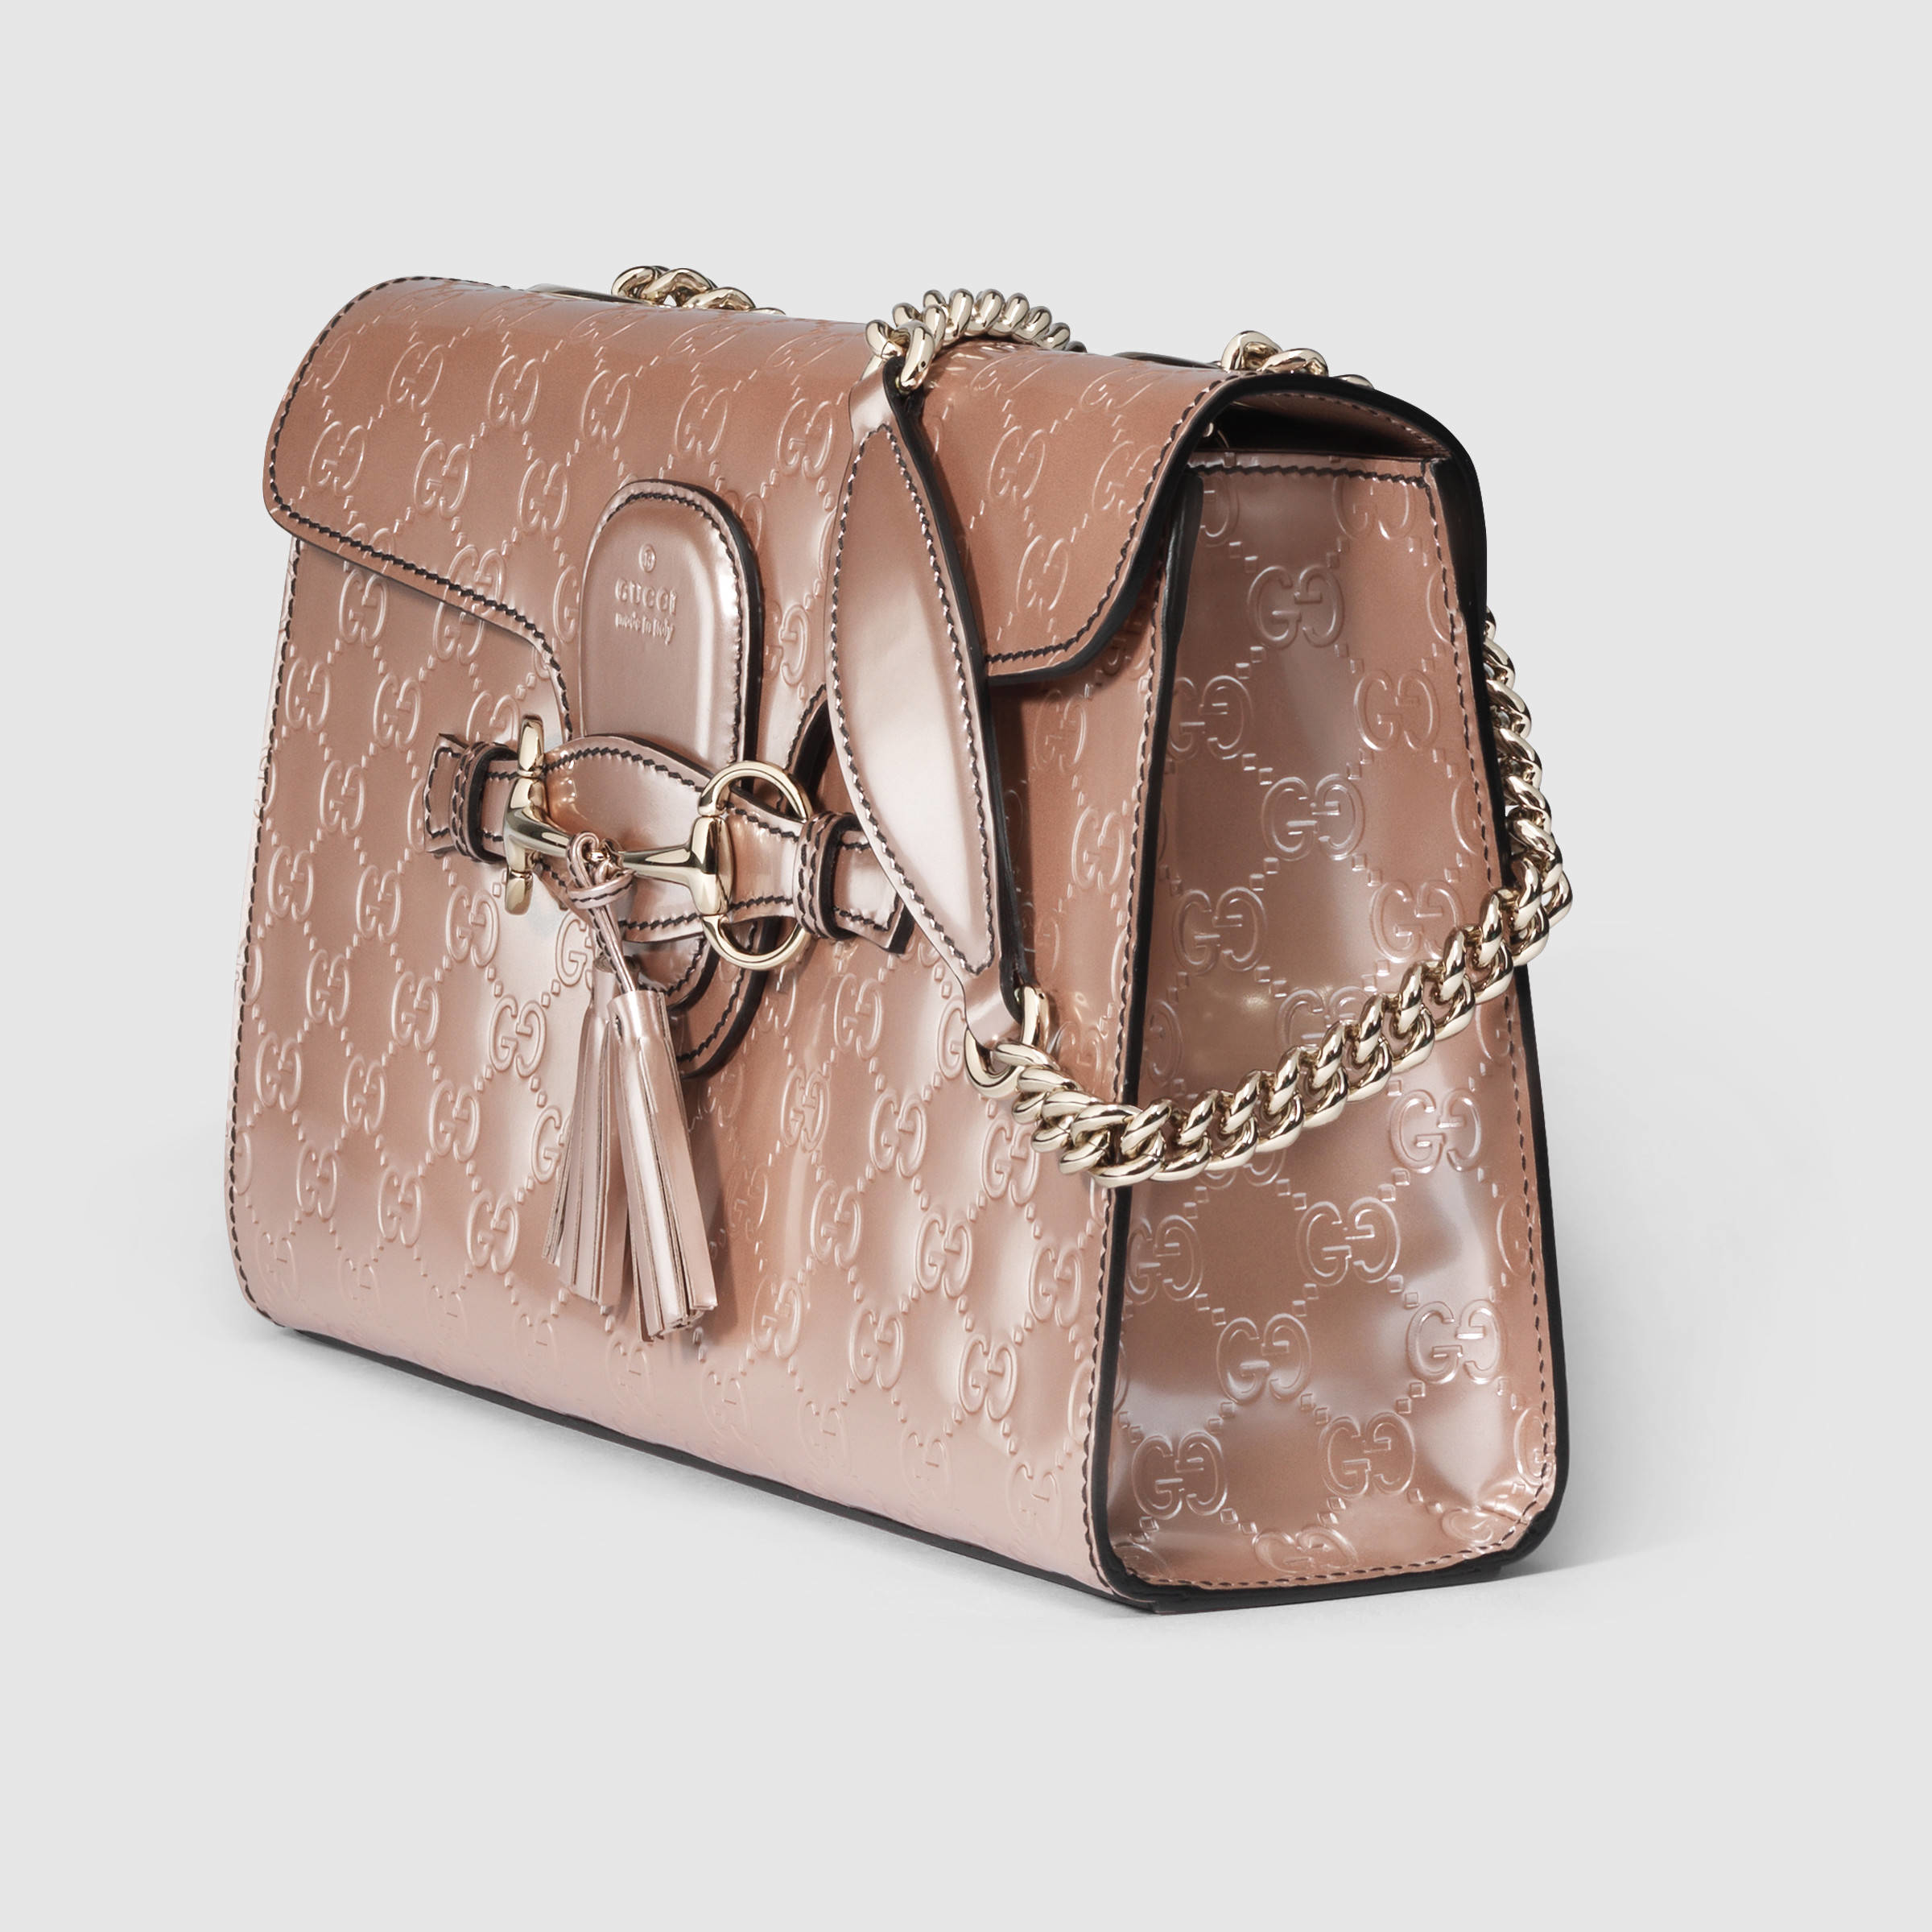 4c2e12baa59 Lyst - Gucci Emily Guccissima Chain Shoulder Bag in Natural